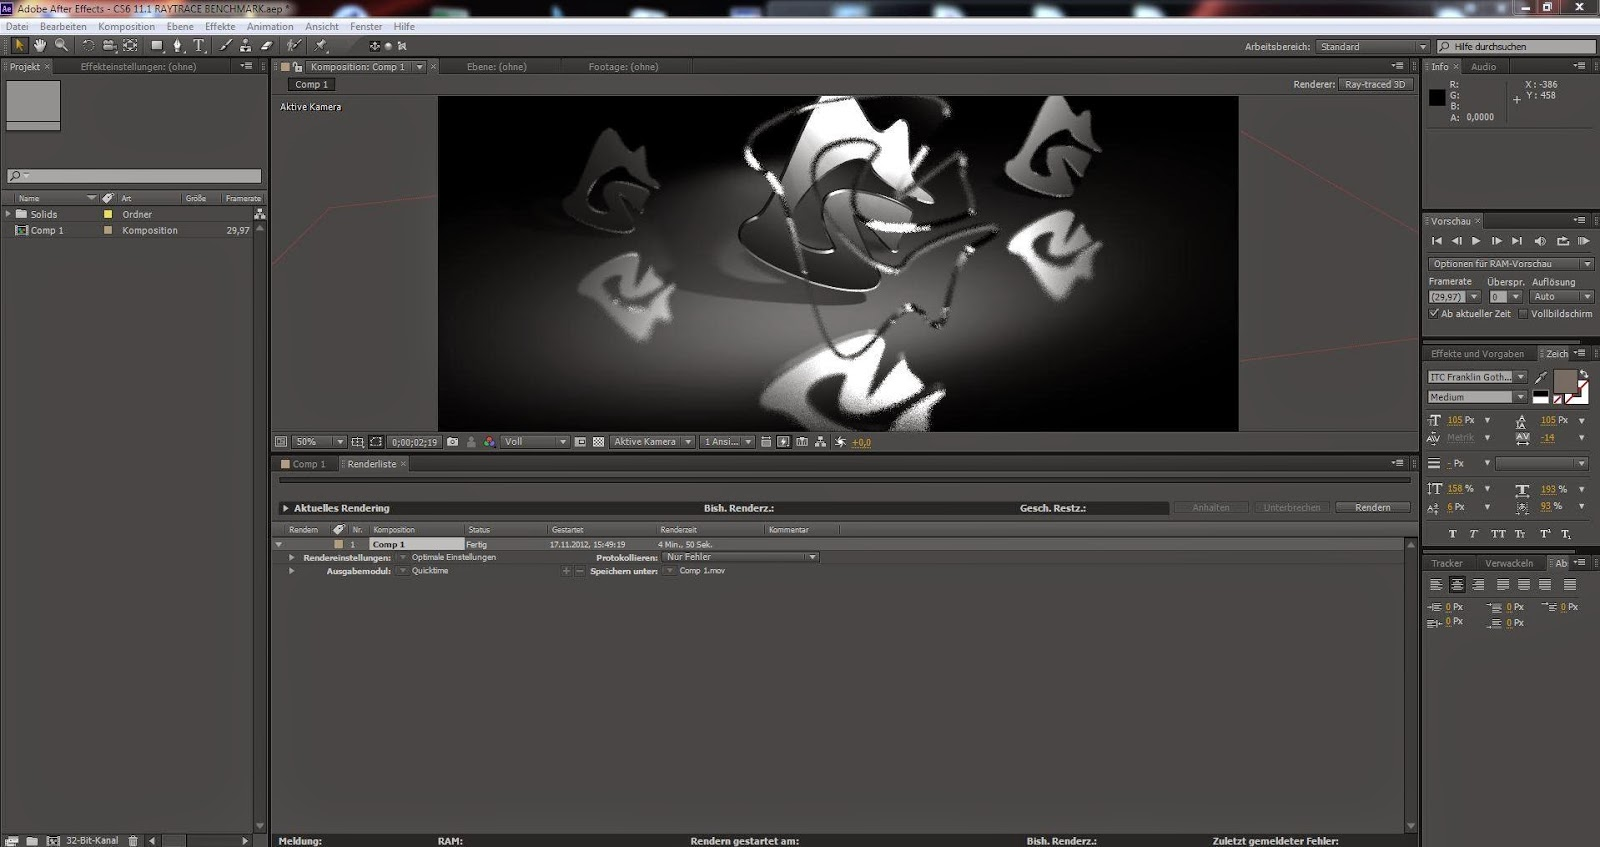 Adobe after effects cs6 full version free download.